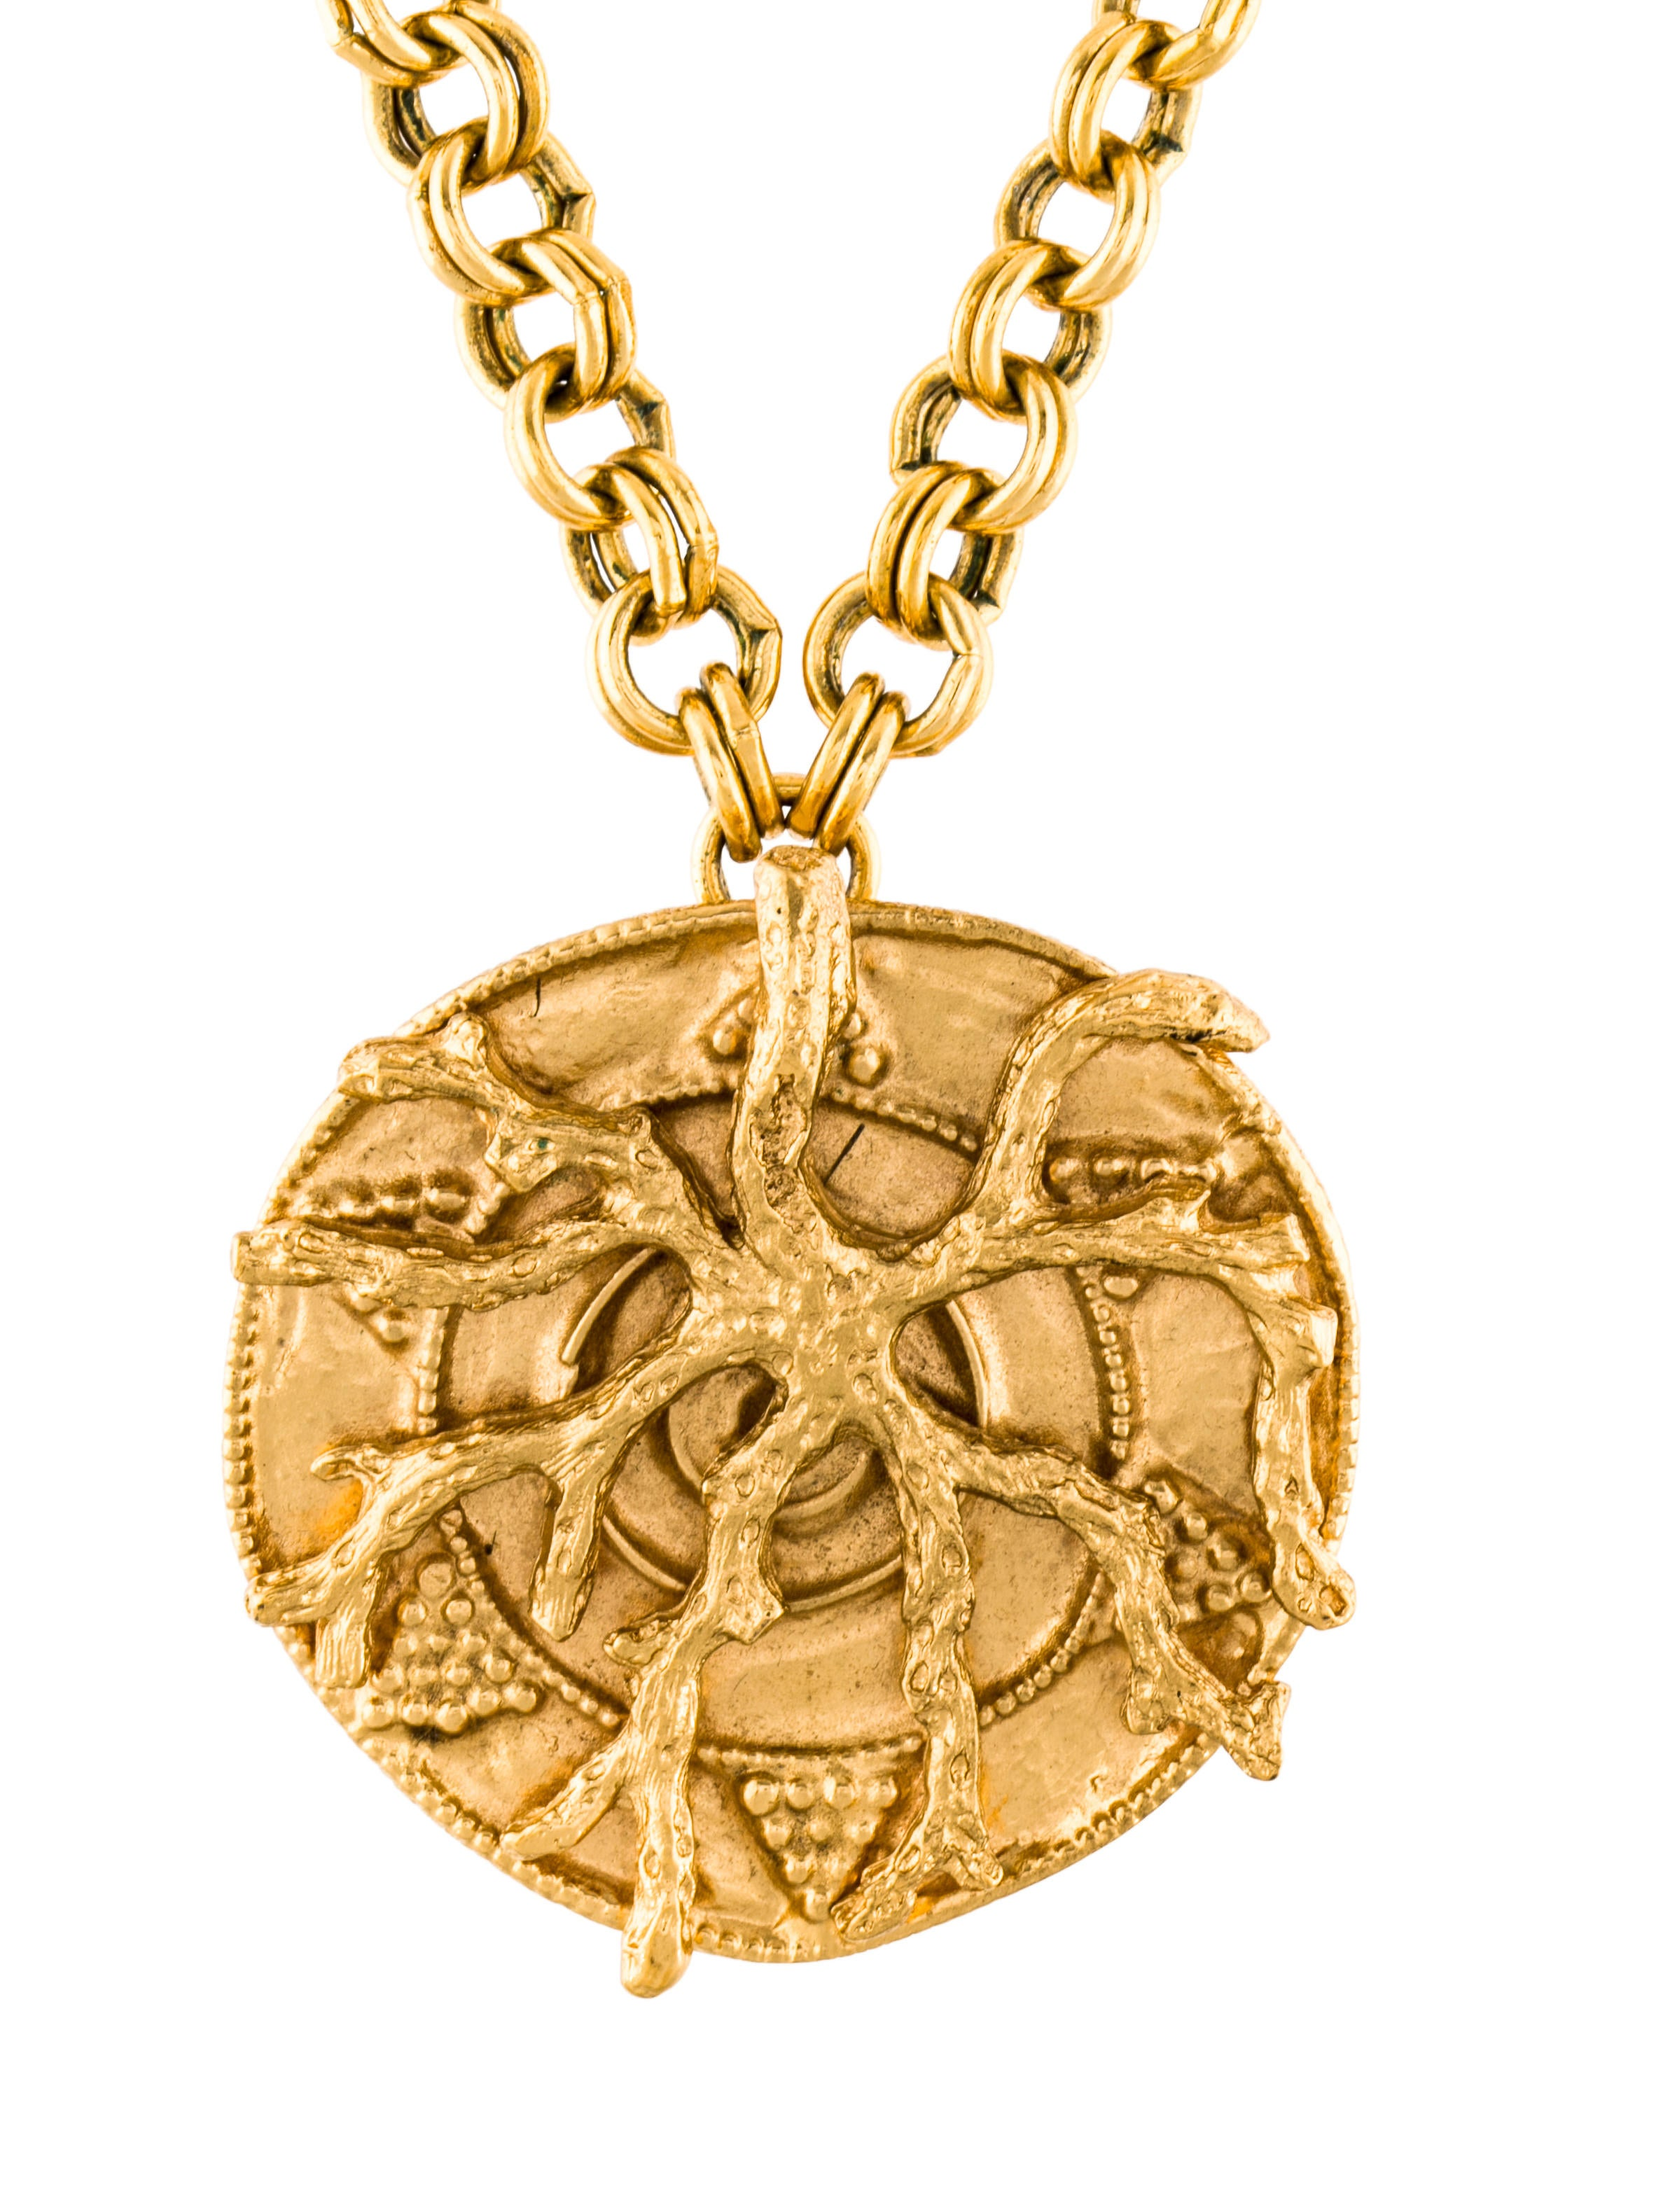 gold more medallion necklace saint medals shop magdalene books vermeil mary oils cards gift mariemadeleinepriezpn